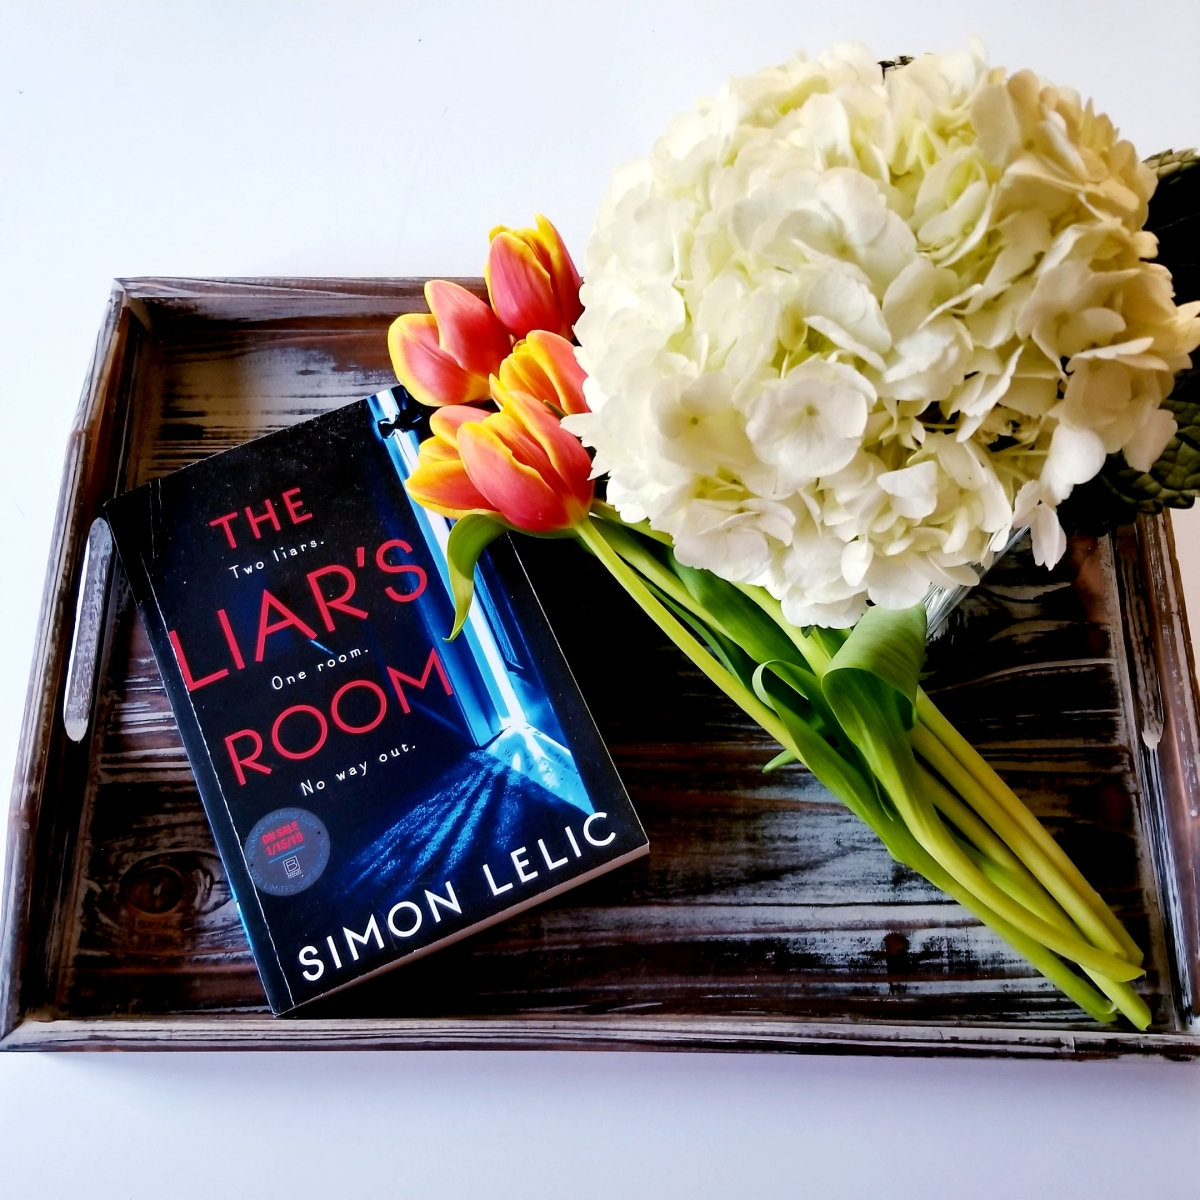 The Liar's Room by Simon Lelic #bookreview #tarheelreader #thrliarsroom @simon_lelic @berkleypub #theliarsroom #bookbestiesliarsroom #blogtour #bookgiveaway